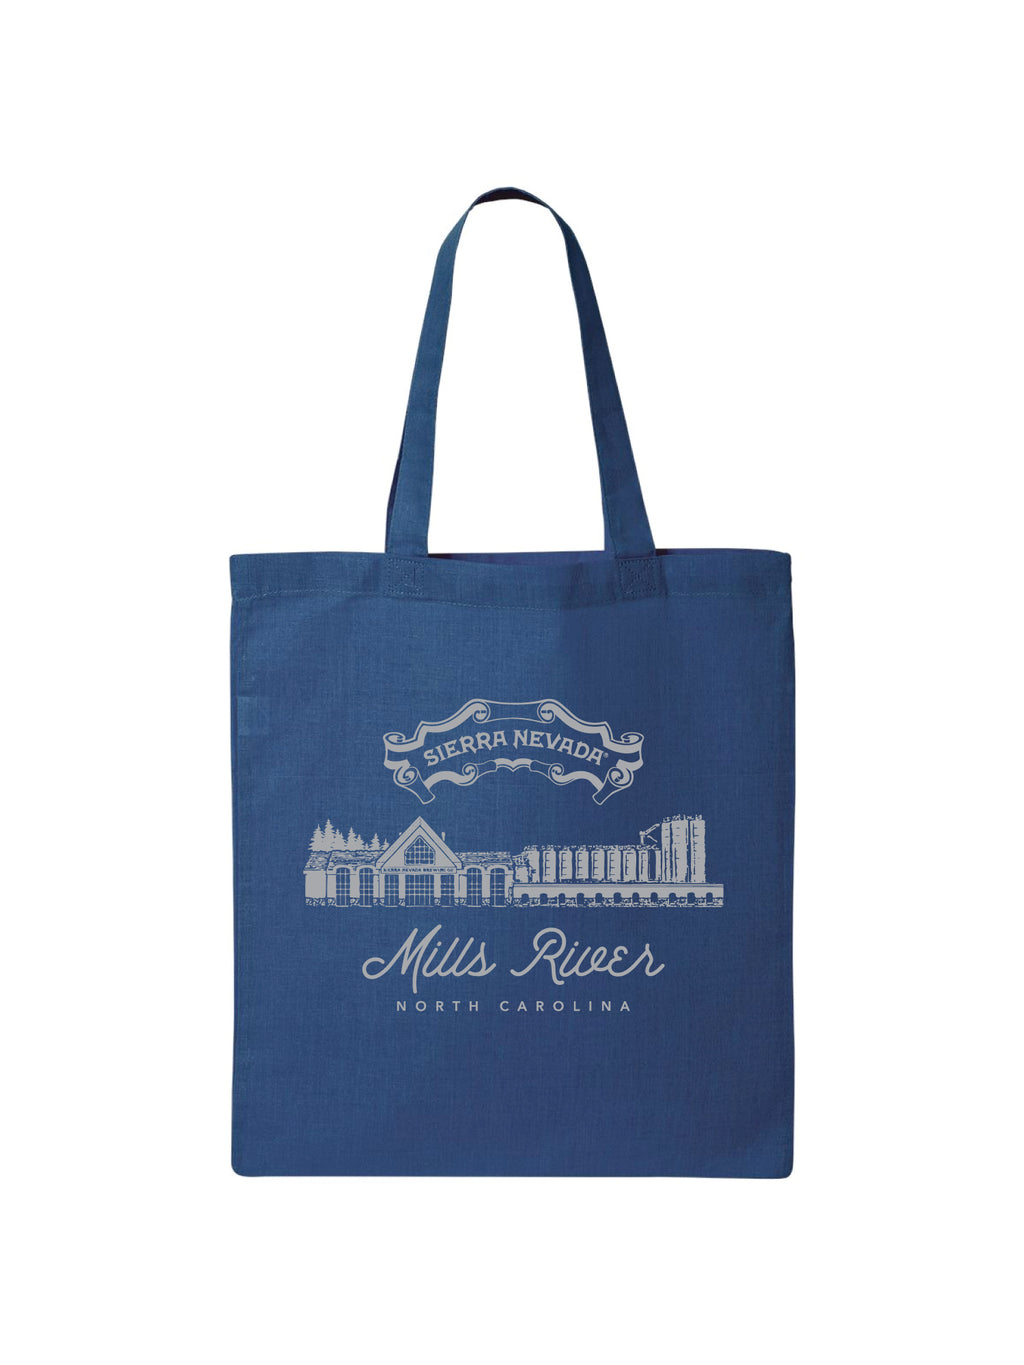 TOTE MILLS RIVER BAG- ROYAL - Anderson Bros Design and Supply